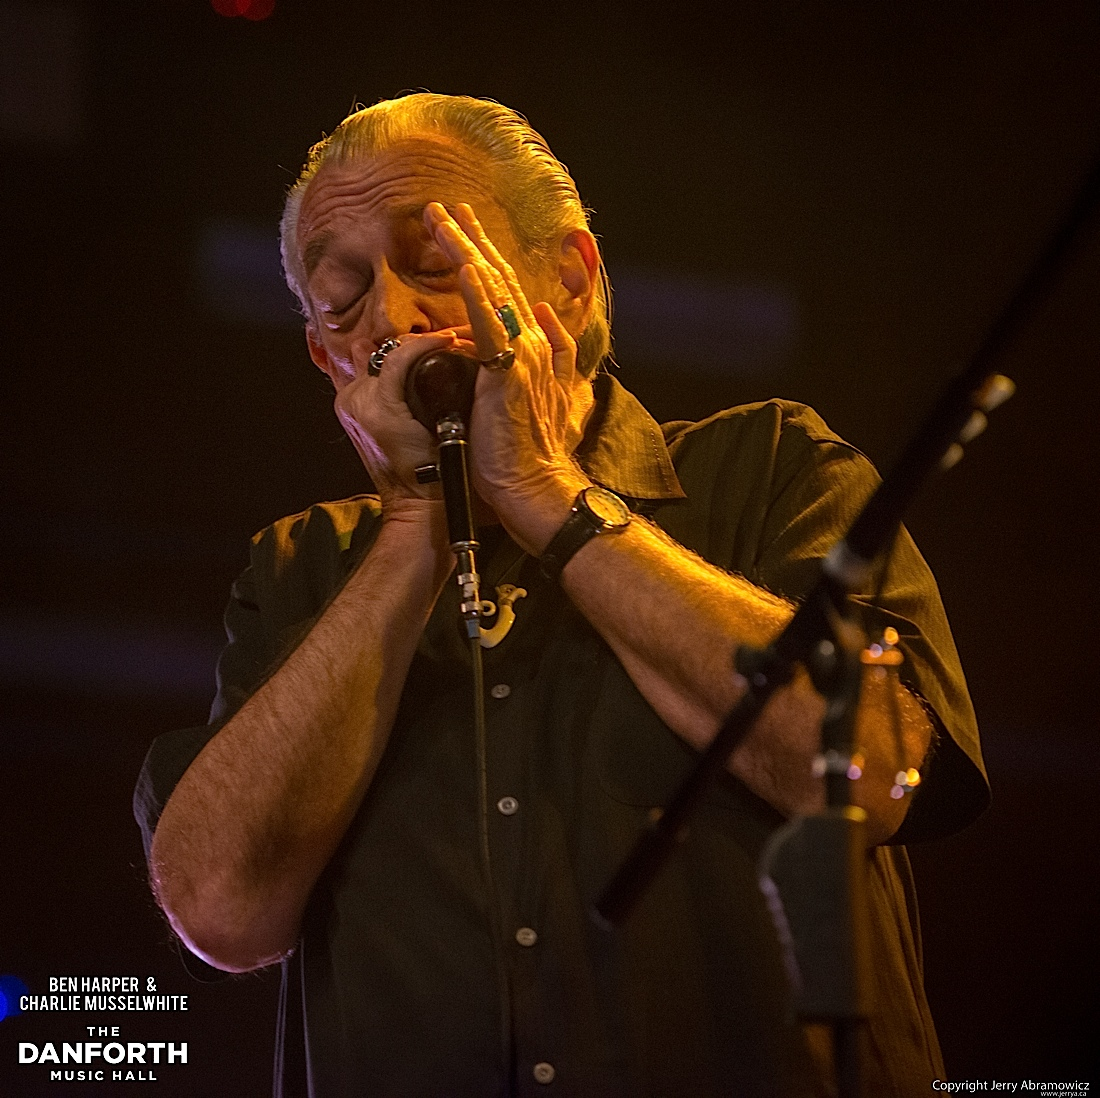 20130301 Ben Harper and Charlie Musselwhite at The Danforth Music Hall Toronto 0244